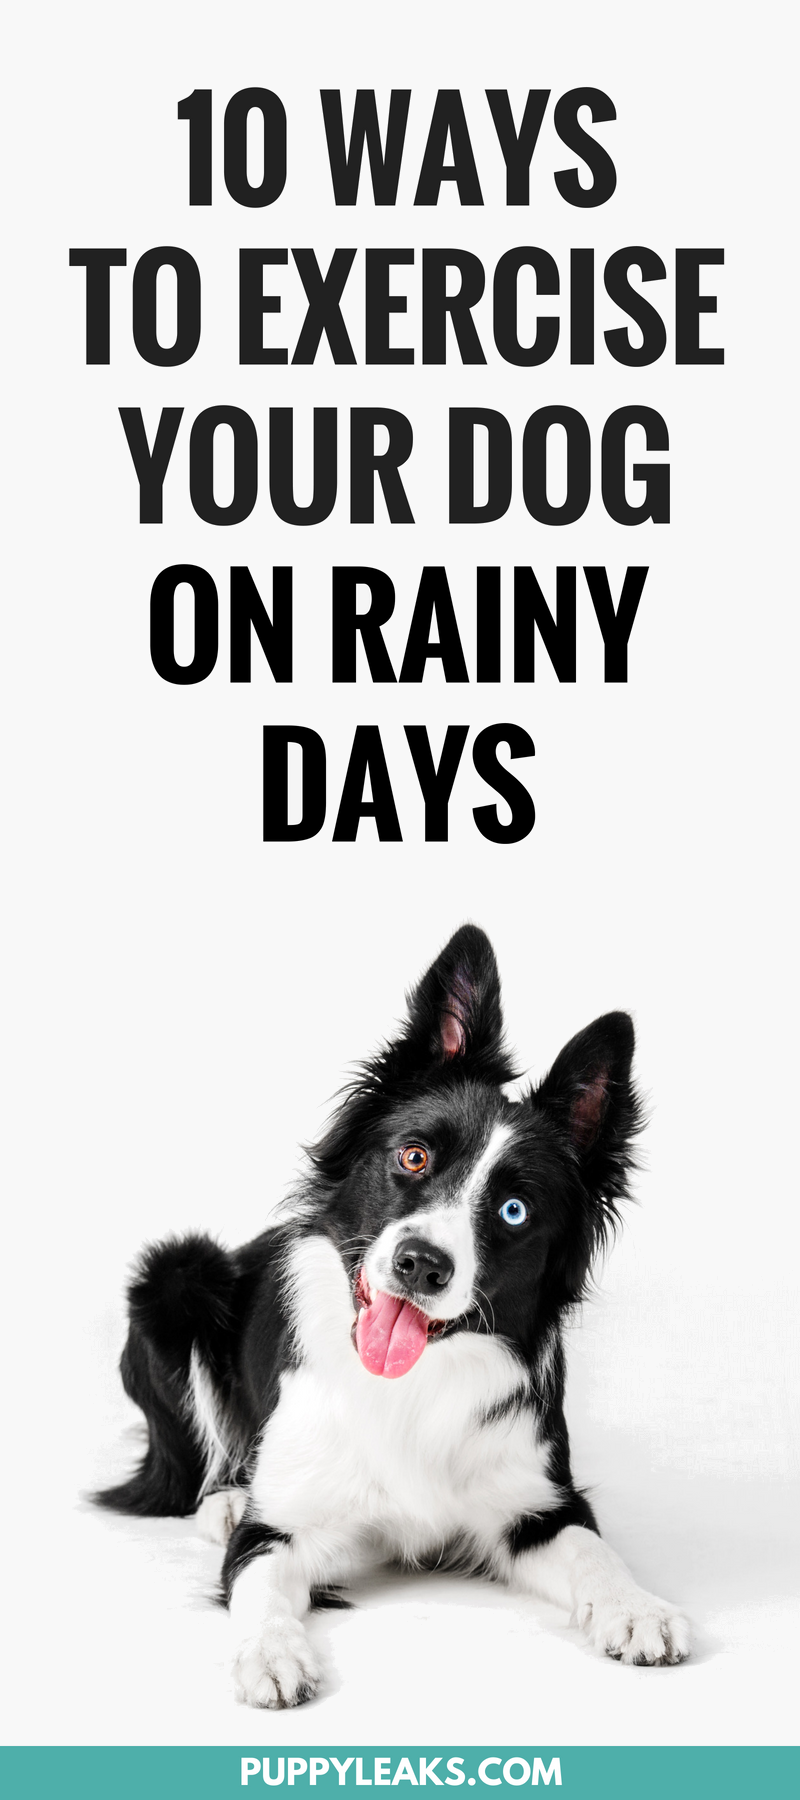 10 Ways To Exercise Your Dog On a Rainy Day